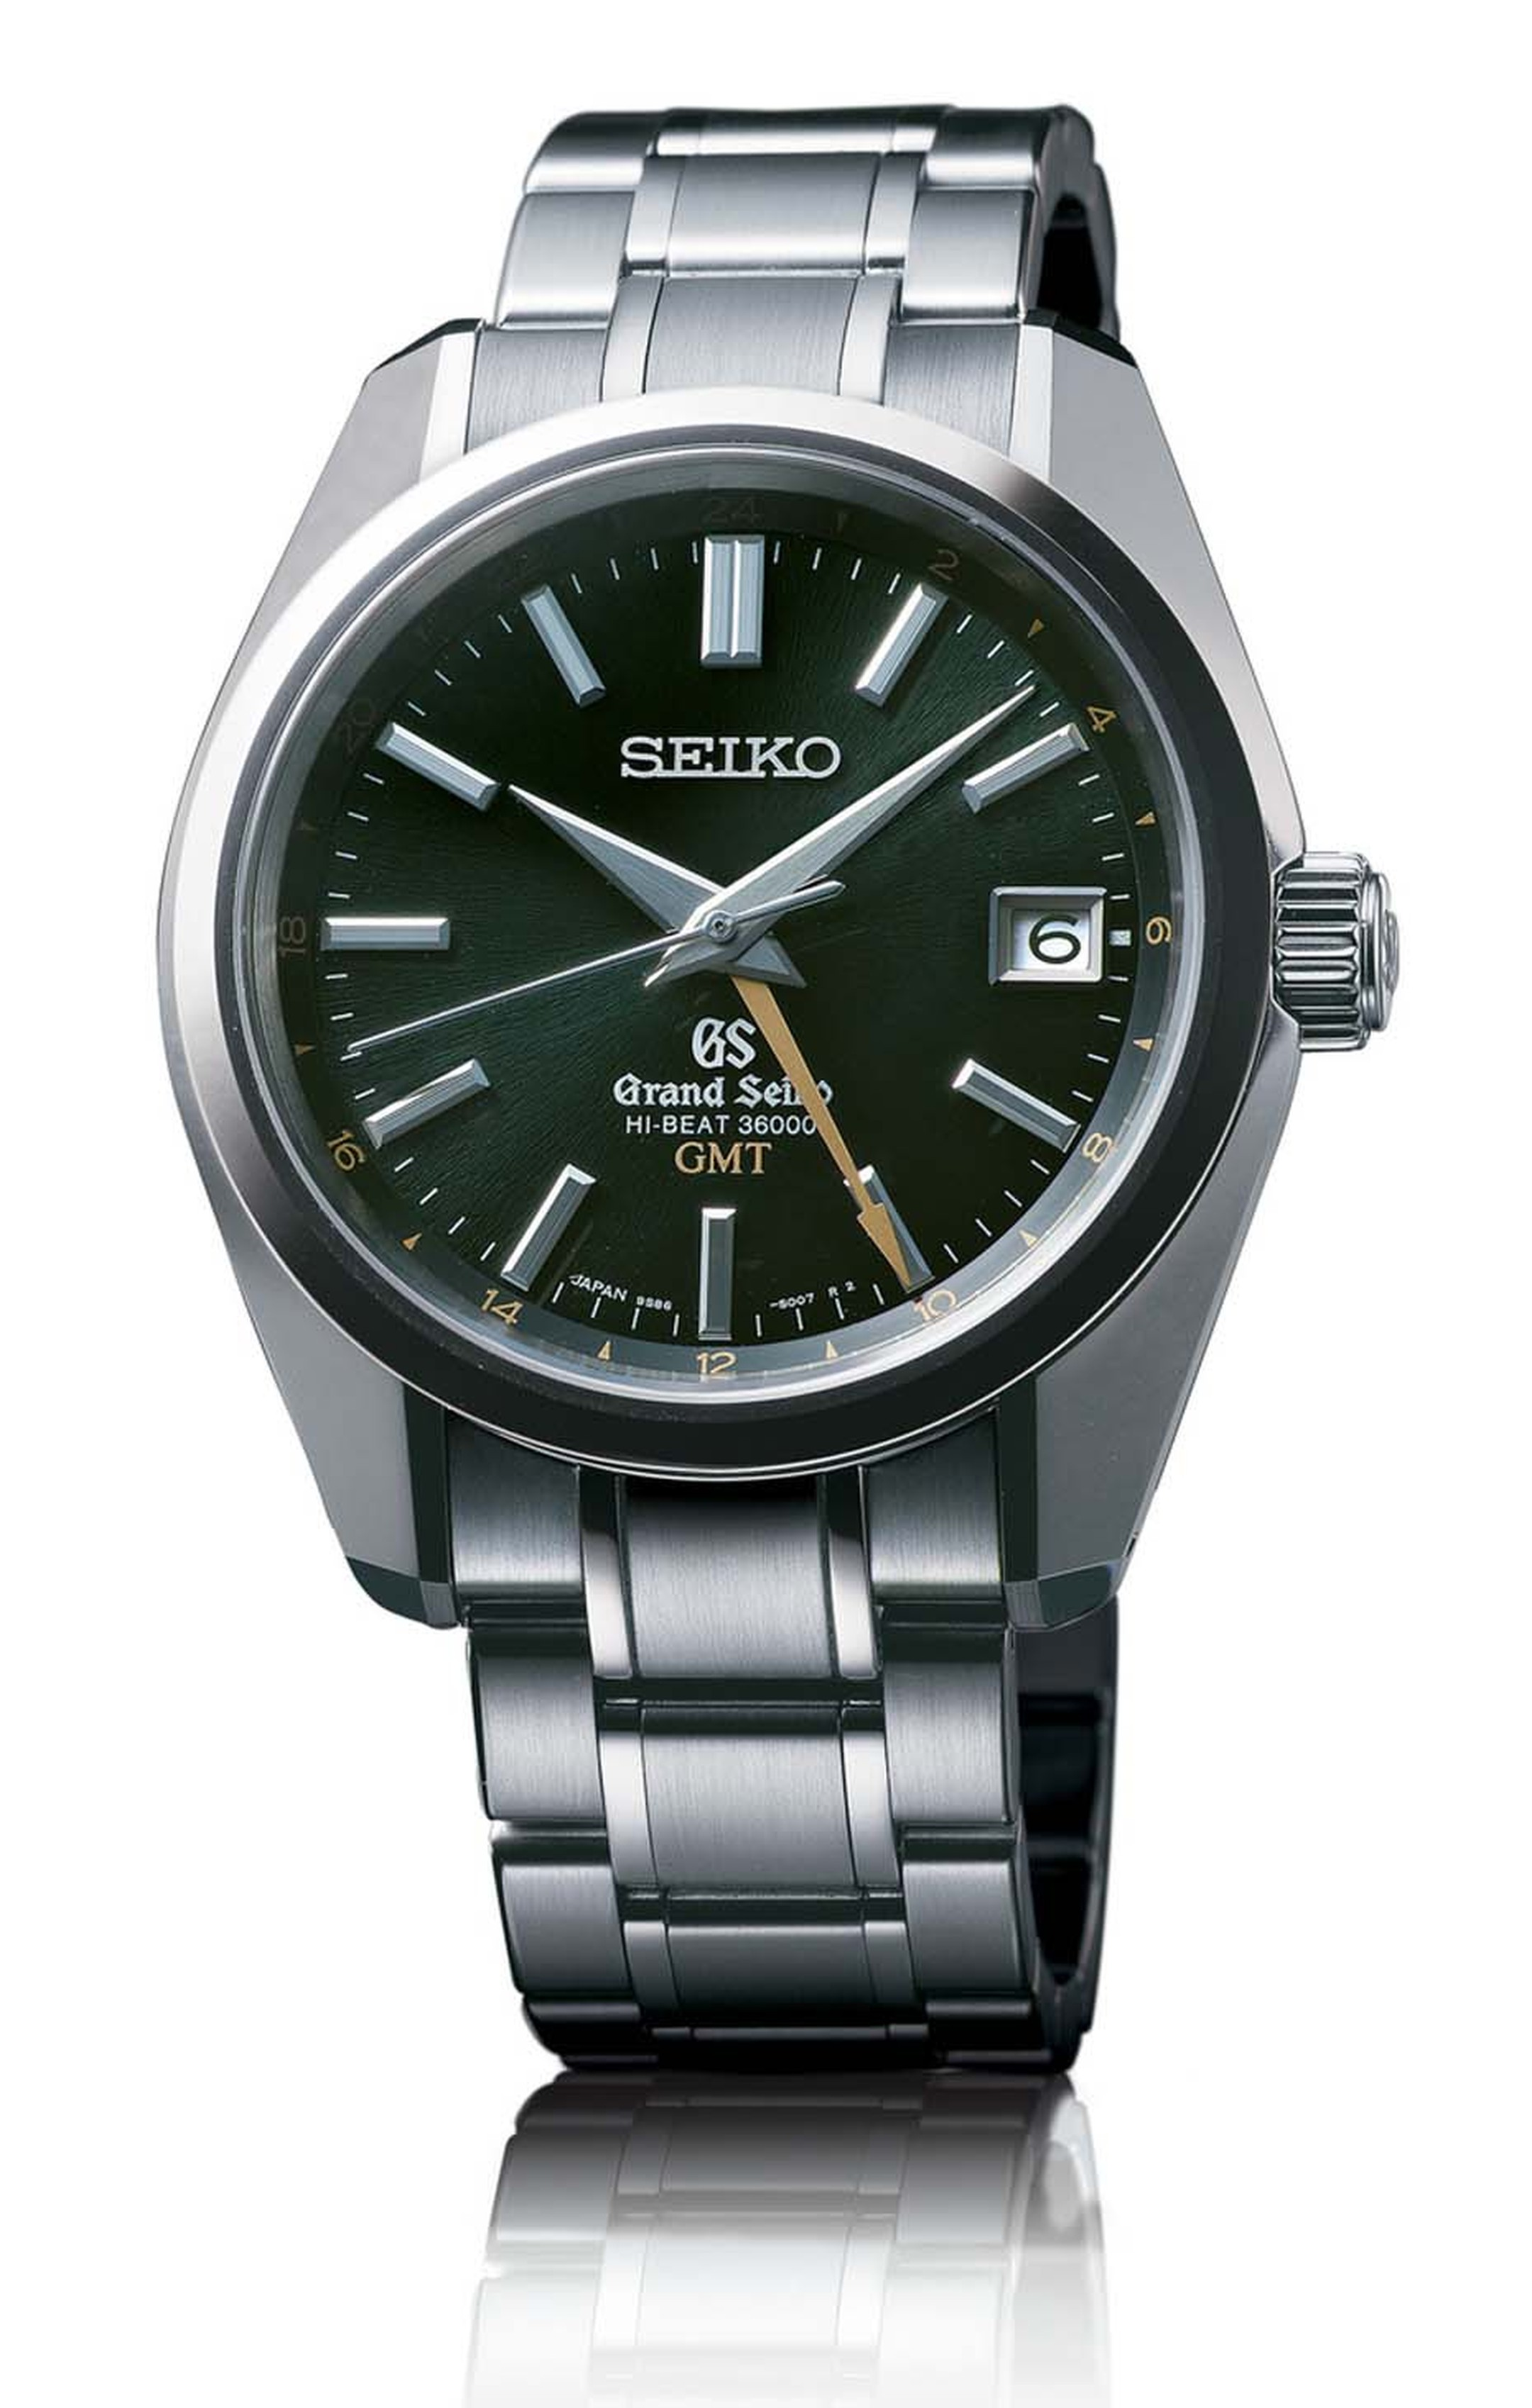 Seiko's Grand Seiko Hi-Beat 36000 GMT watch secured the Petite Aiguille (little hand) prize at the GPHG which was awarded to watches under CHF 8,000.